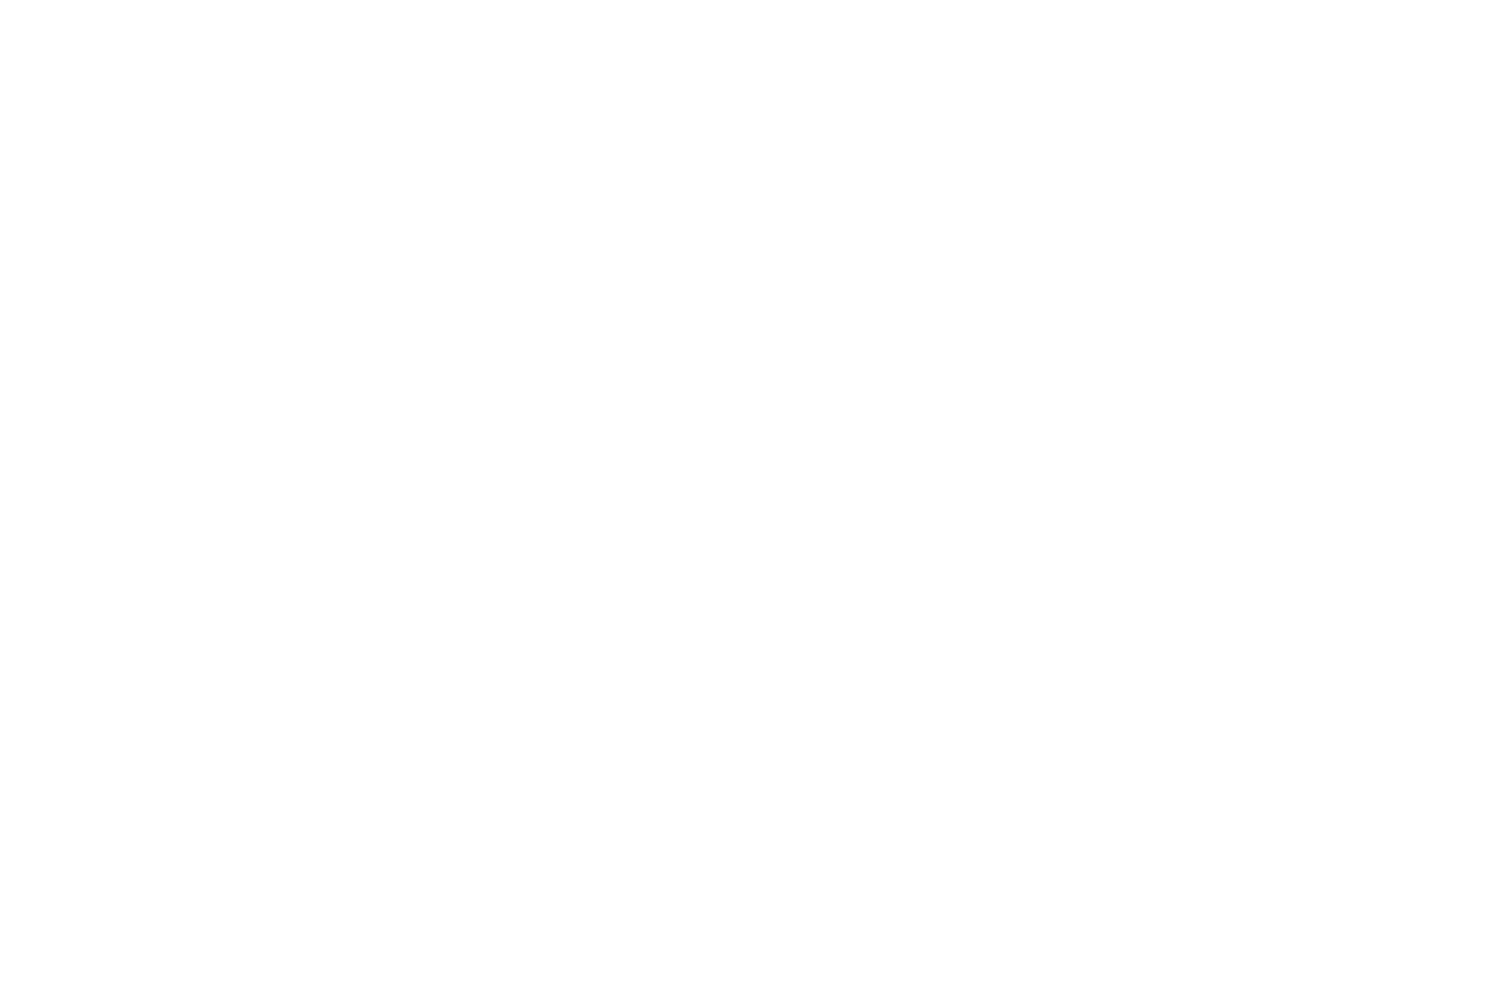 Davis Richardson Design